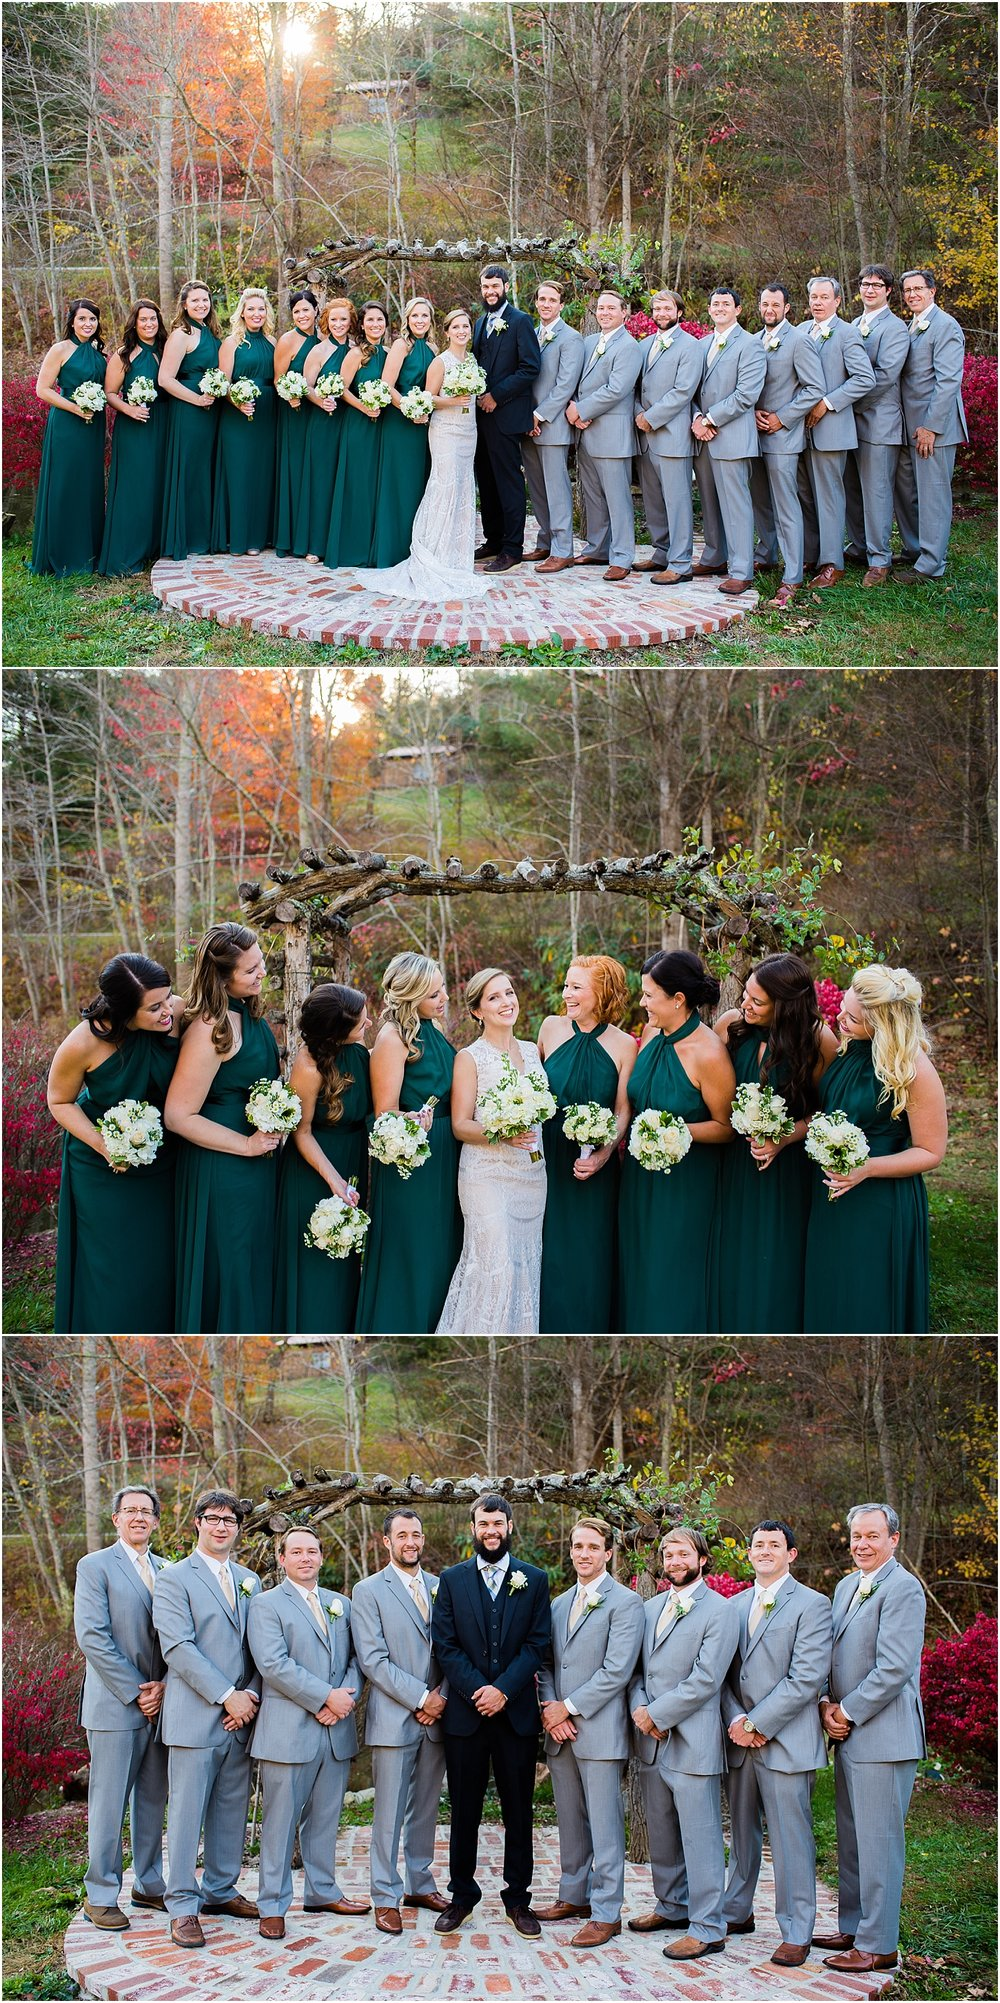 Outdoorsy-Earthy-Fall-Wedding-Party-Blue-Ridge-Mountains-North-Carolina-Destination-Wedding-Bridesmaids-Groomsmen